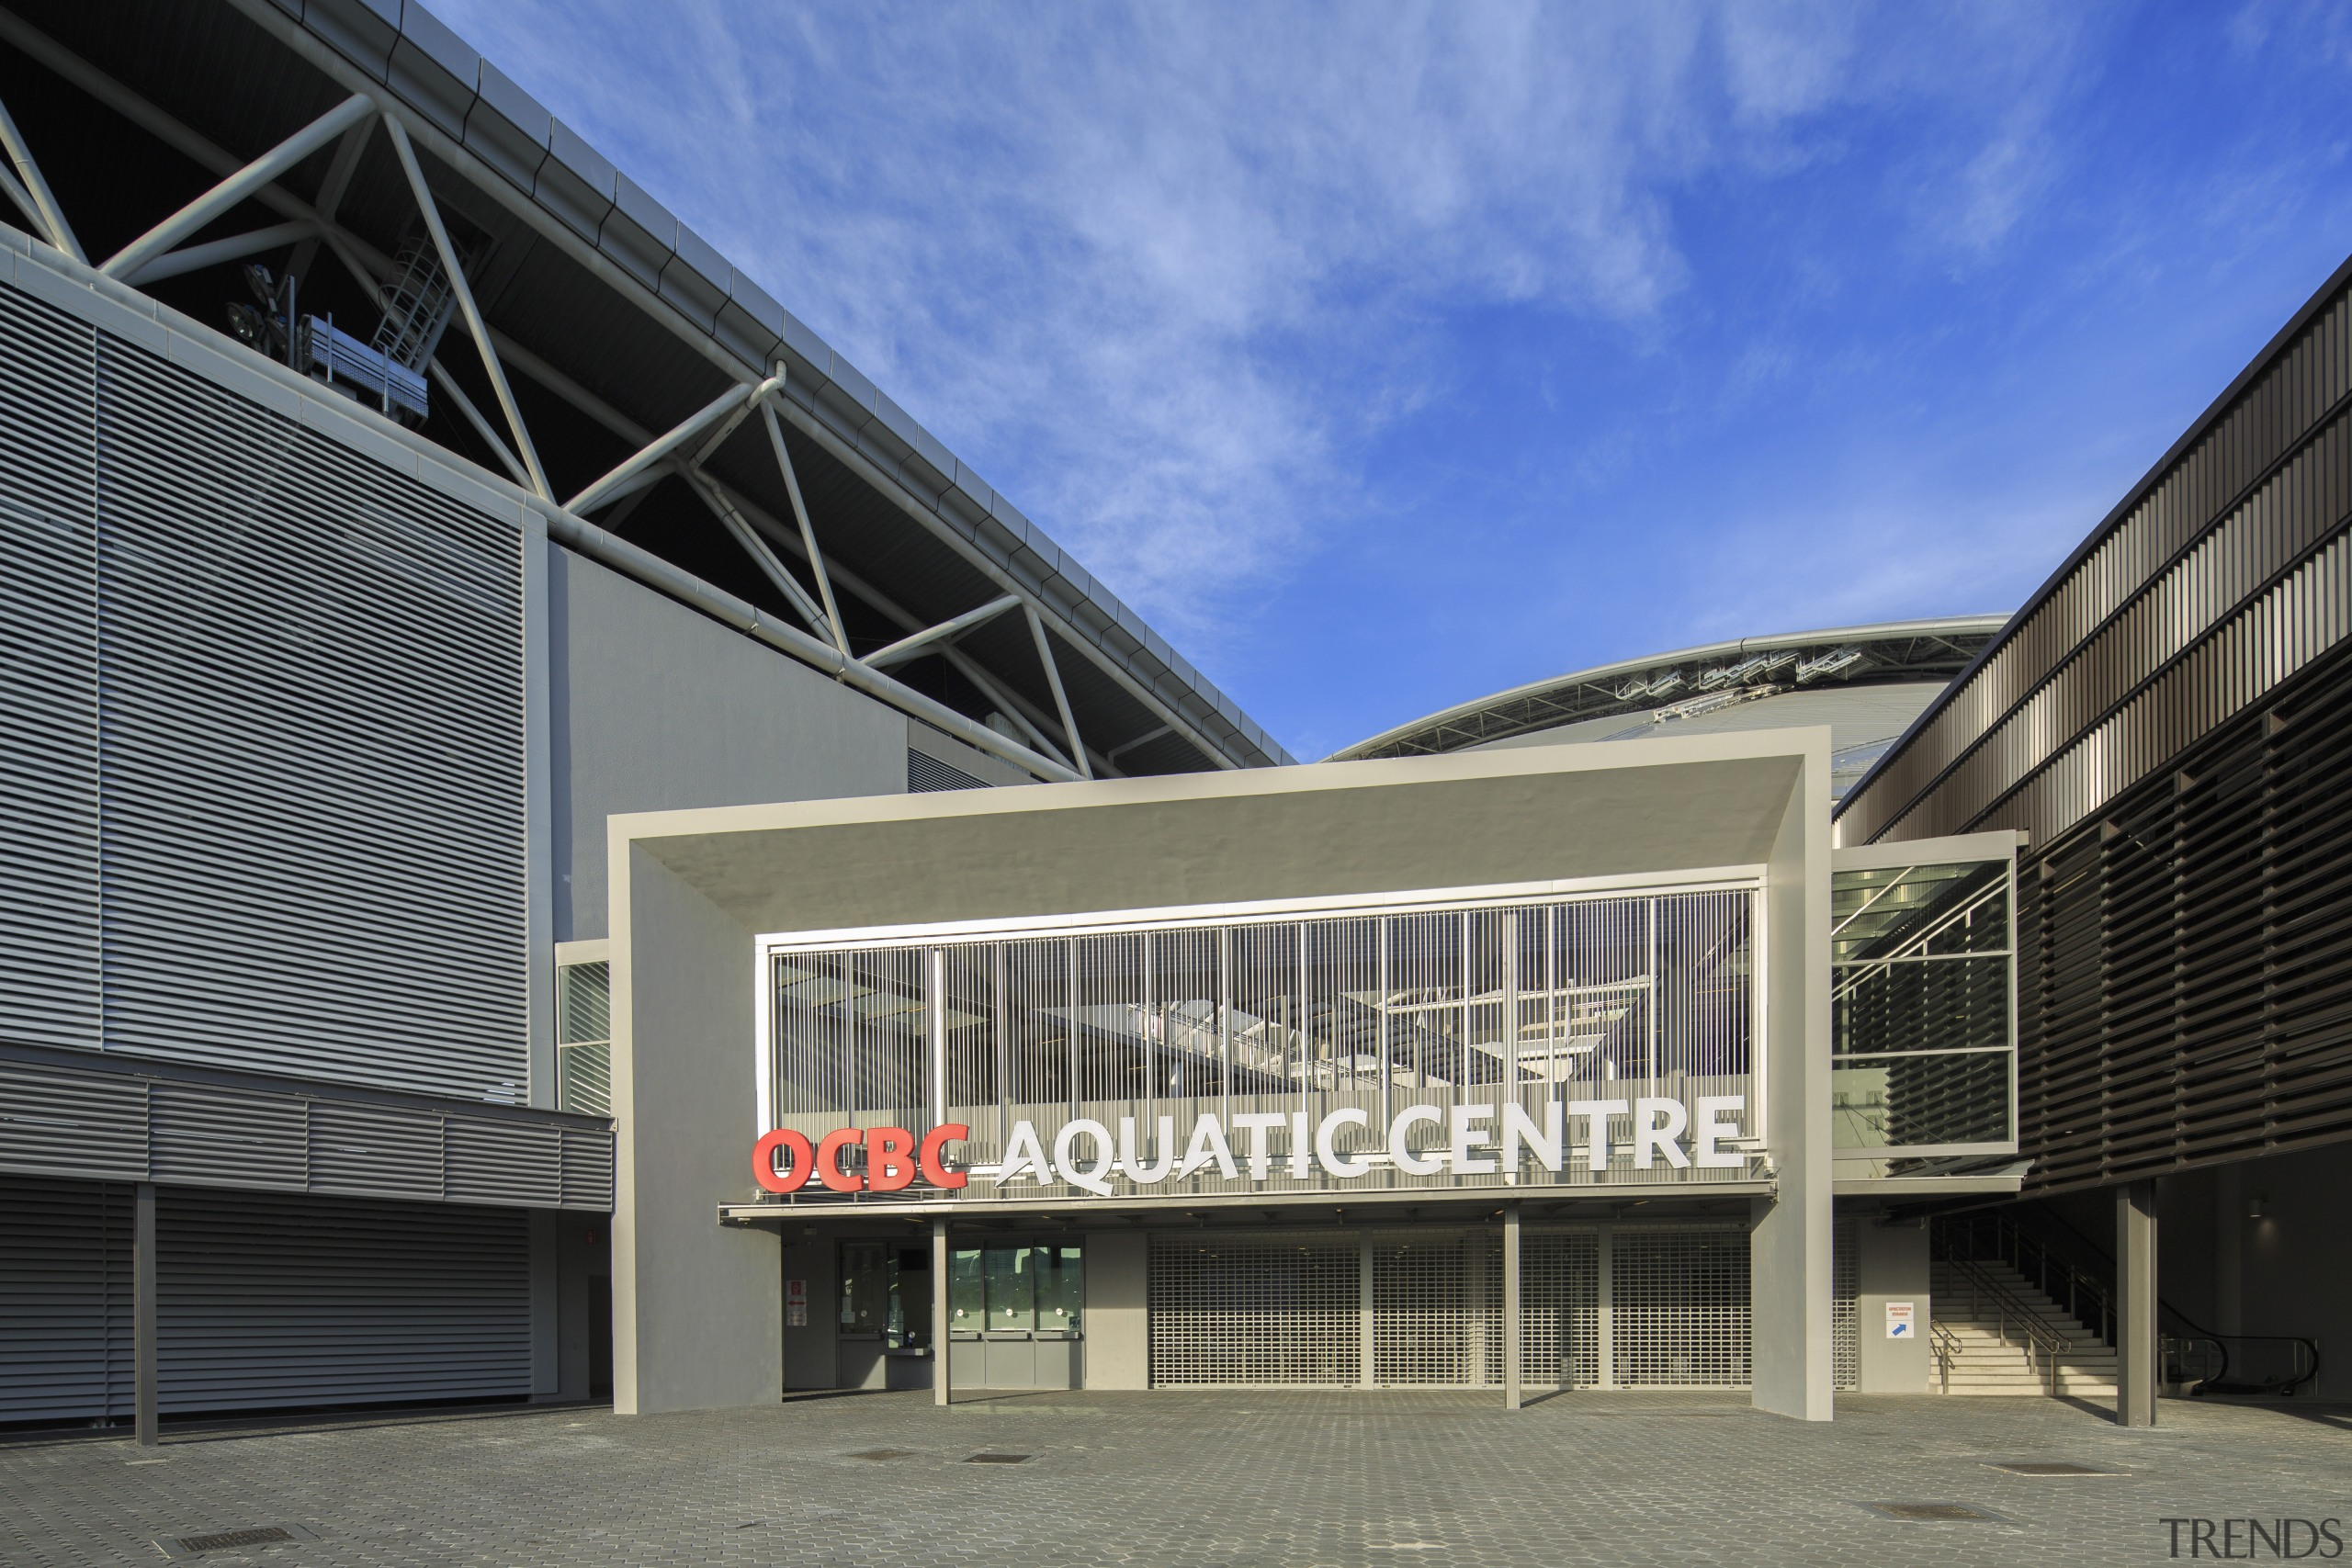 The OCBC Aquatic Centre, by Arup Associates, has architecture, building, commercial building, corporate headquarters, facade, headquarters, mixed use, real estate, structure, black, gray, blue